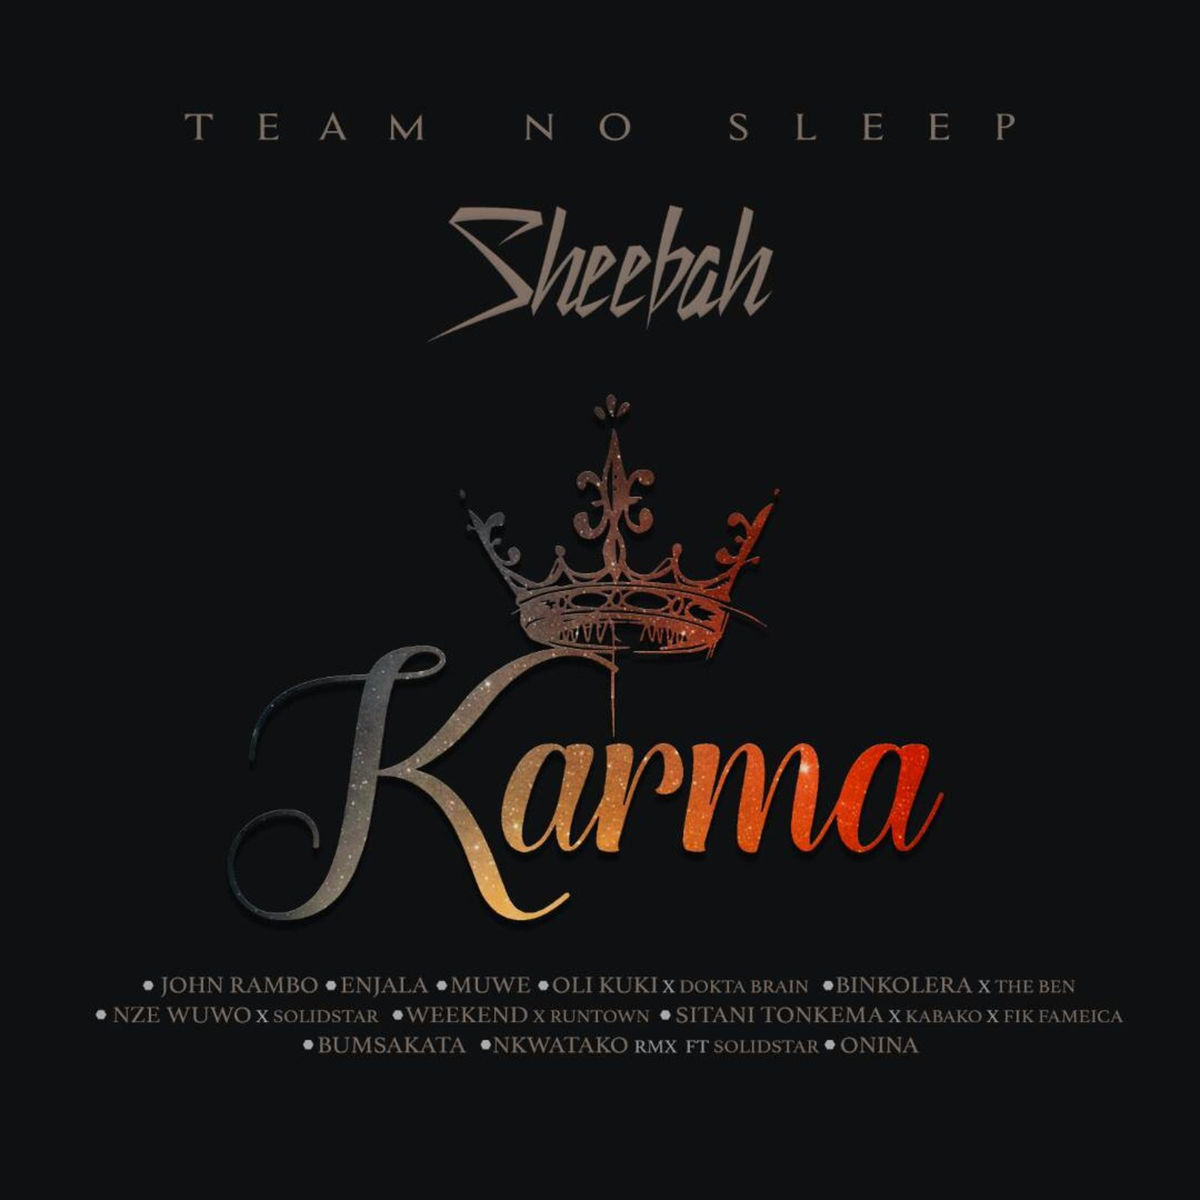 Sheebah Karungi - Karma Queen Album Cover